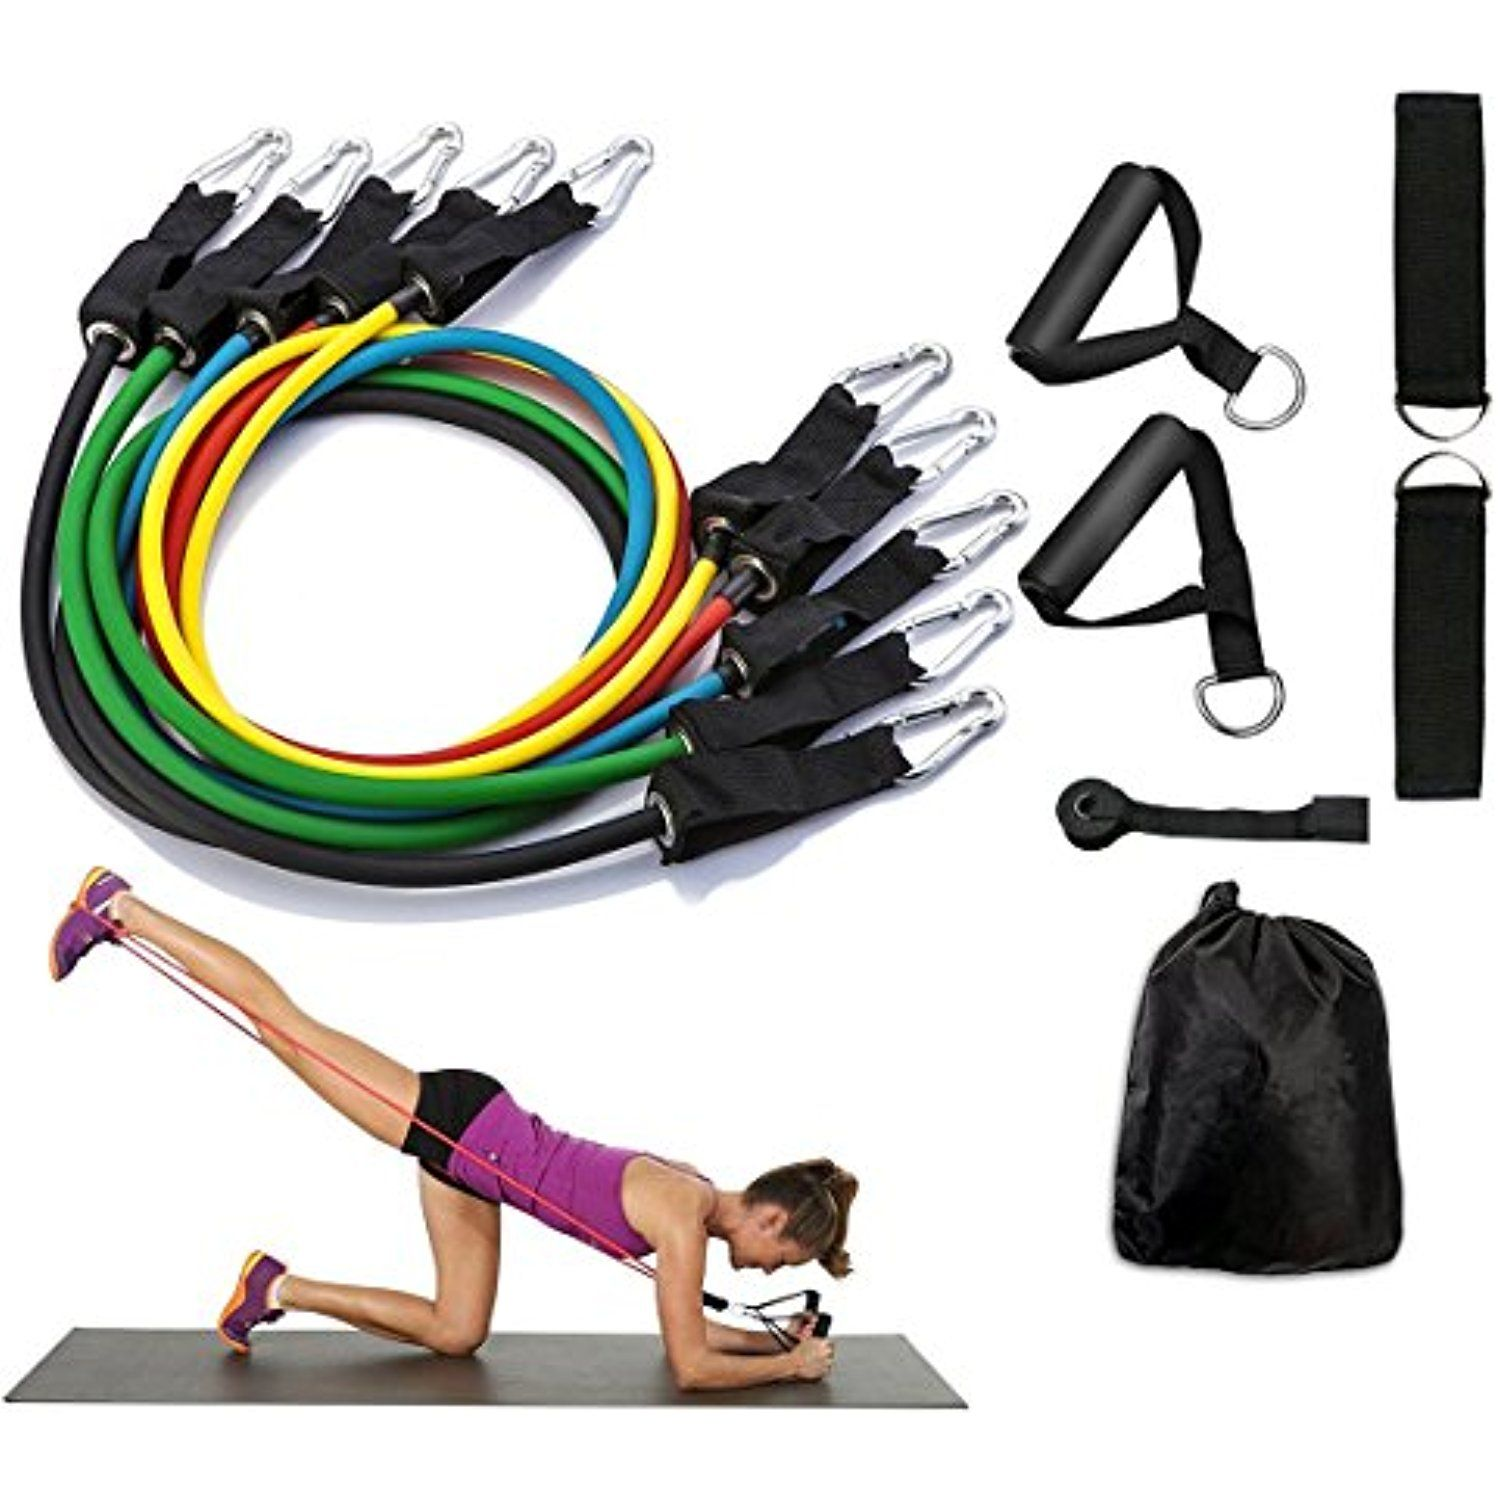 Resistance Band Set With Handles Include 5 Adjustable Exercise Bands Door Anchor Ankle Straps For Resistance Band Workout Resistance Band Set Resistance Band